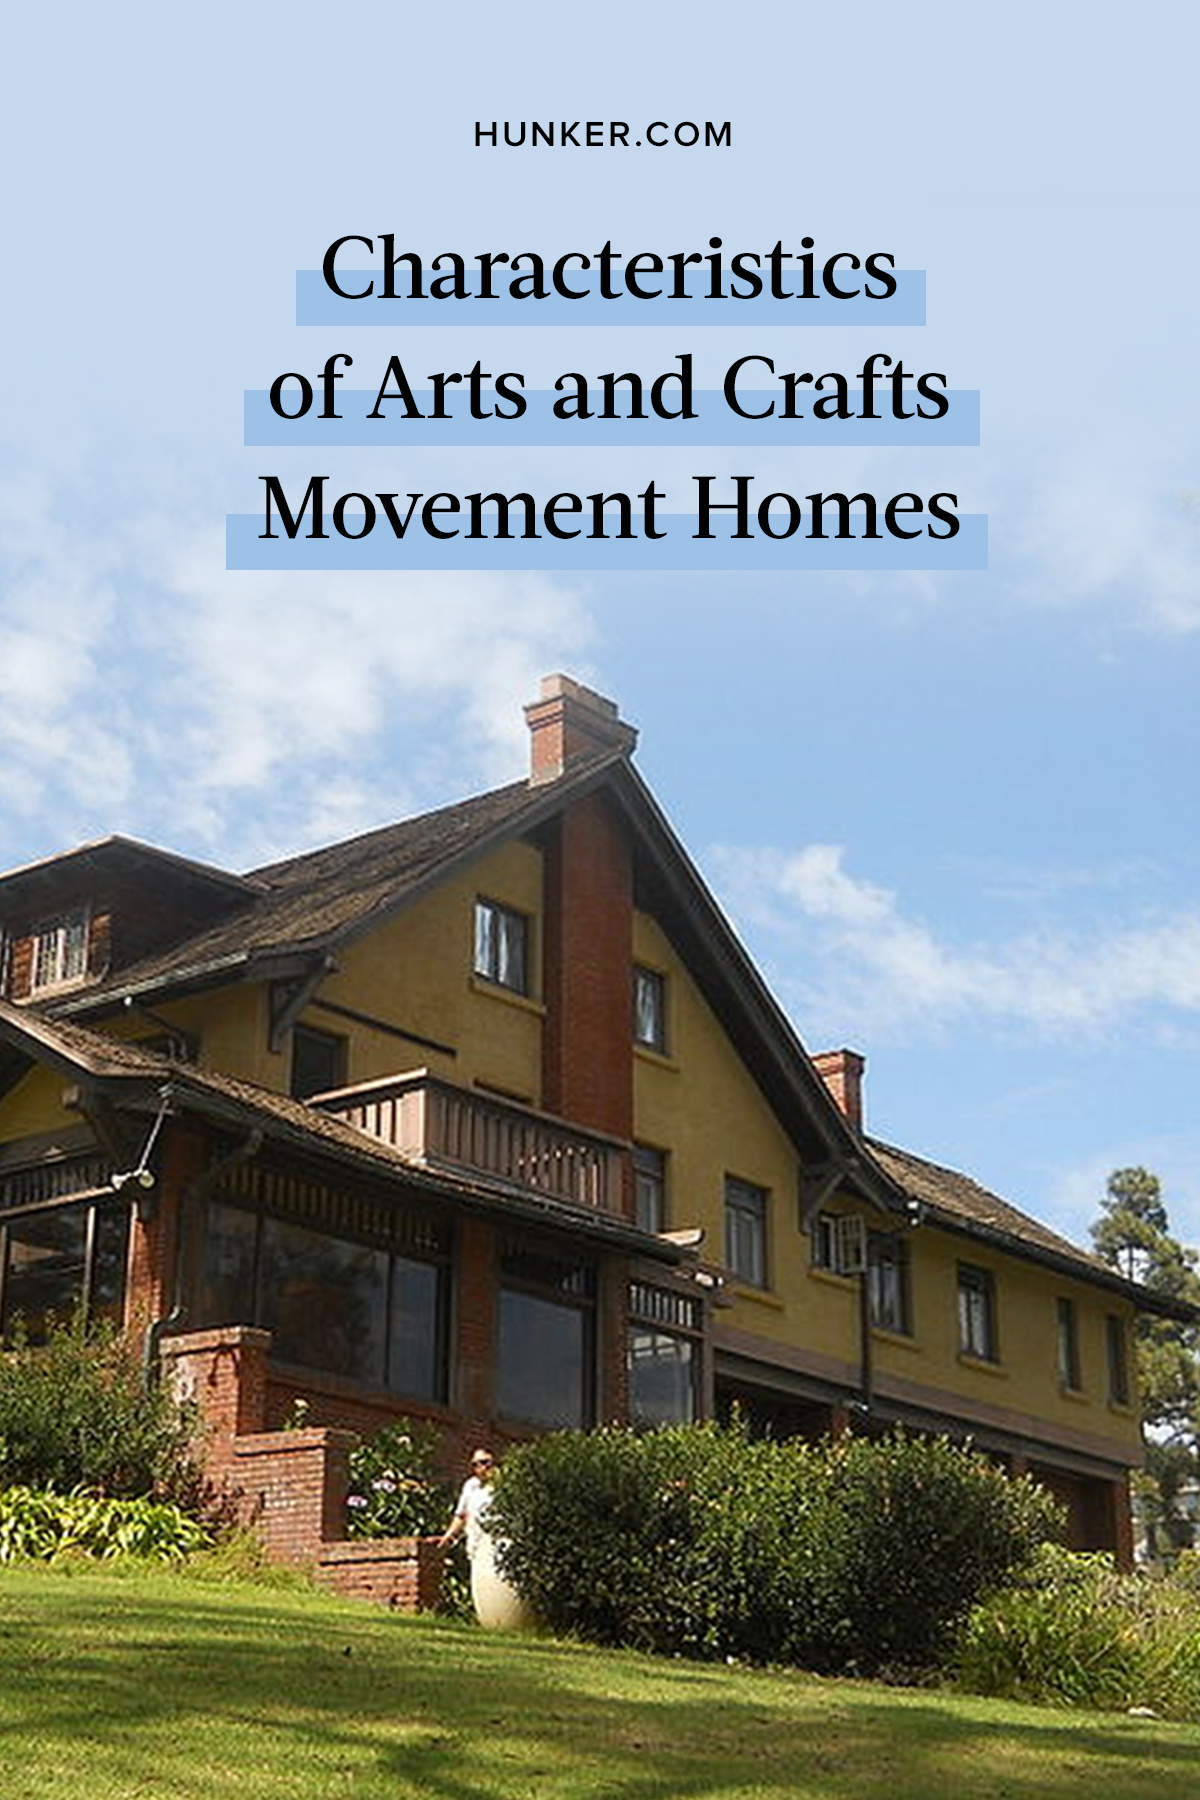 These Are The Main Characteristics Of Arts And Crafts Movement Homes Hunker Arts And Crafts Arts And Crafts House Arts And Crafts Movement